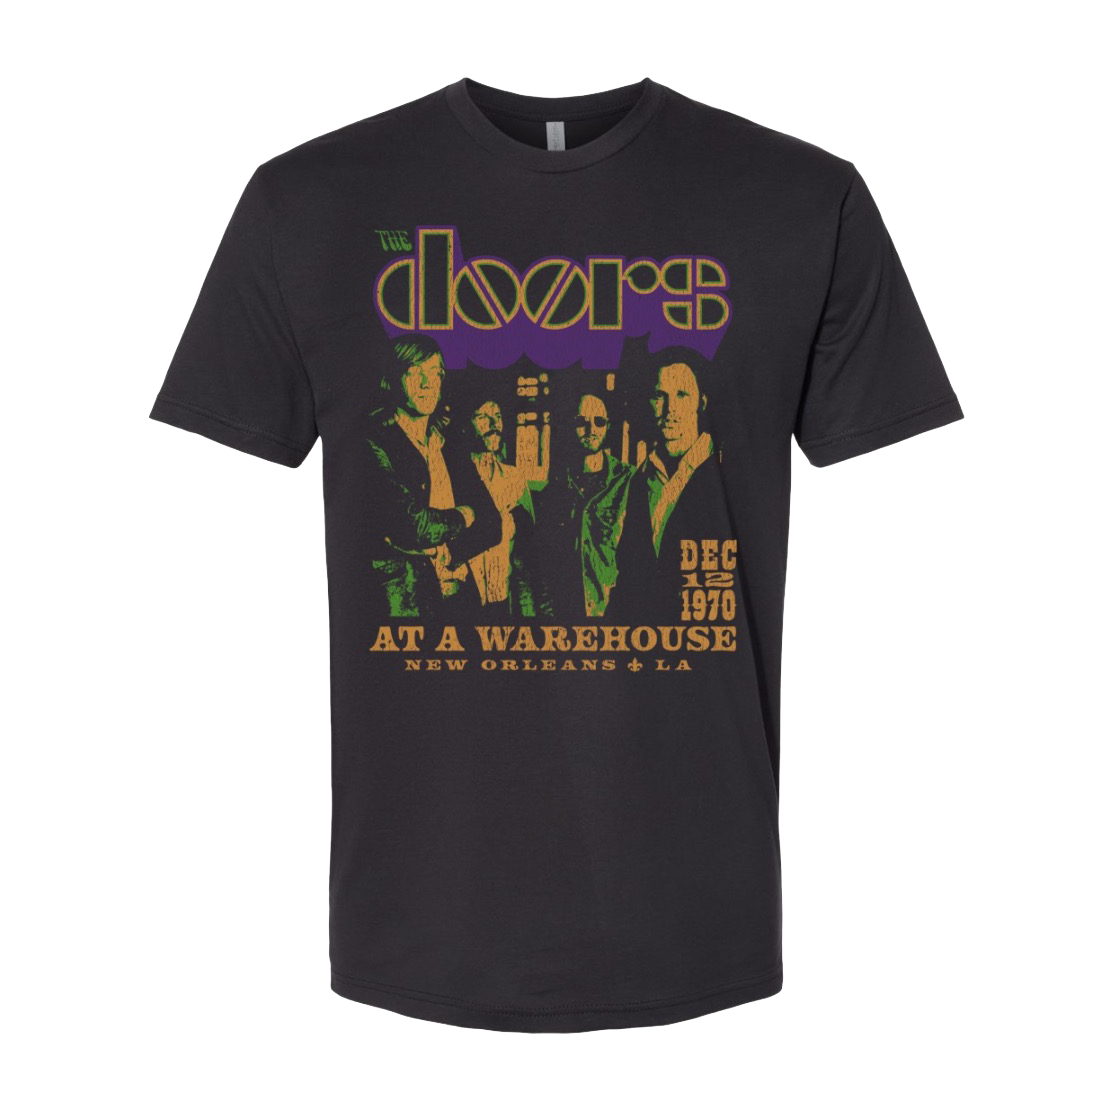 The Doors Last Concert T-Shirt